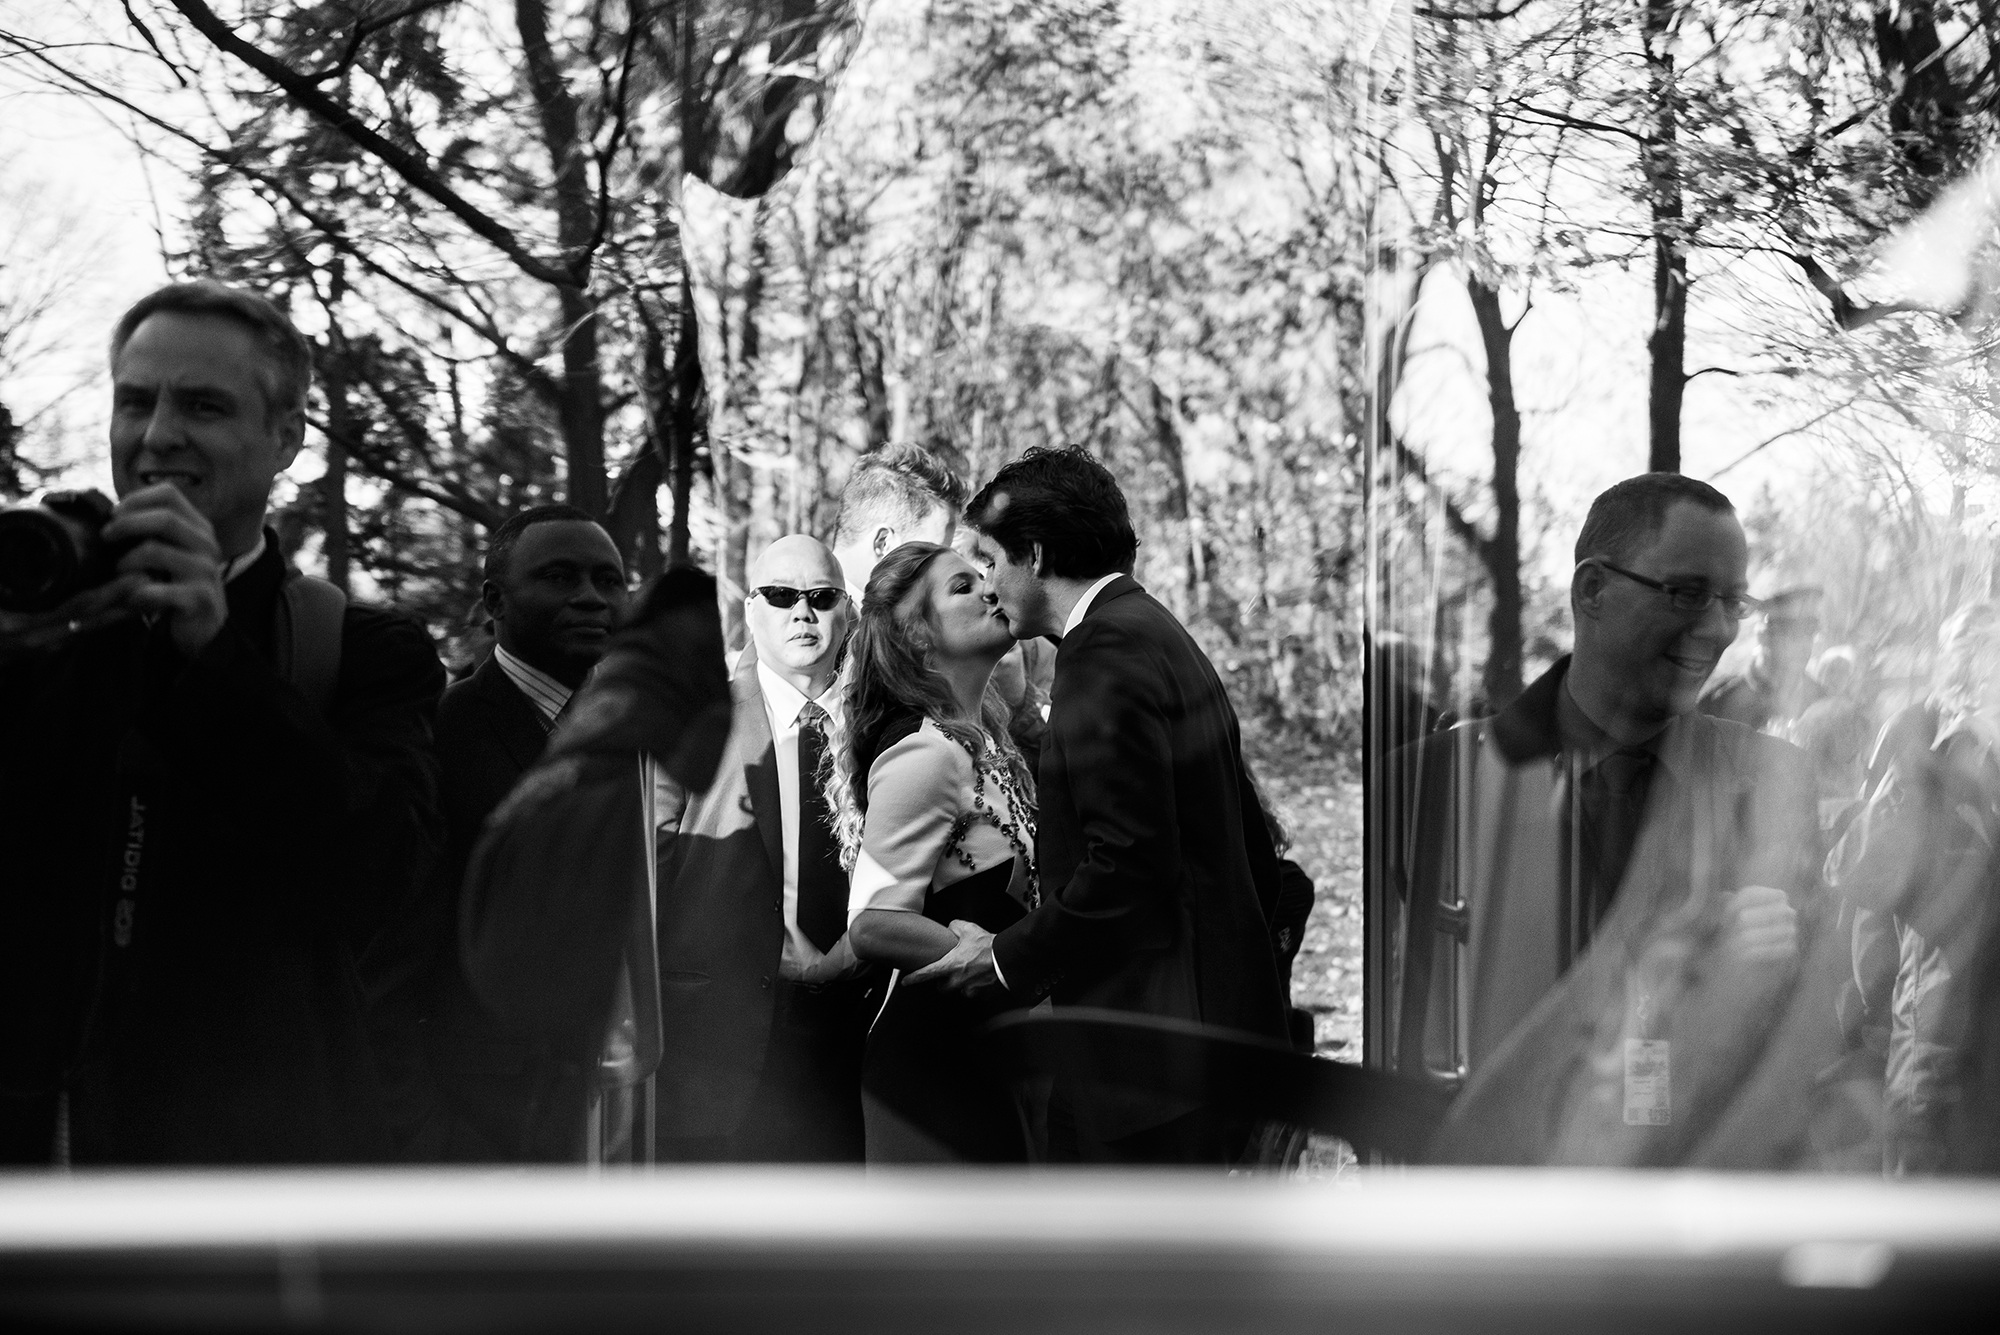 Newly elected Prime Minister Justin Trudeau shares a kiss with his wife Sophie Grégoire Trudeau before hopping on the bus after Swearing-In ceremony held at Rideau Hall.